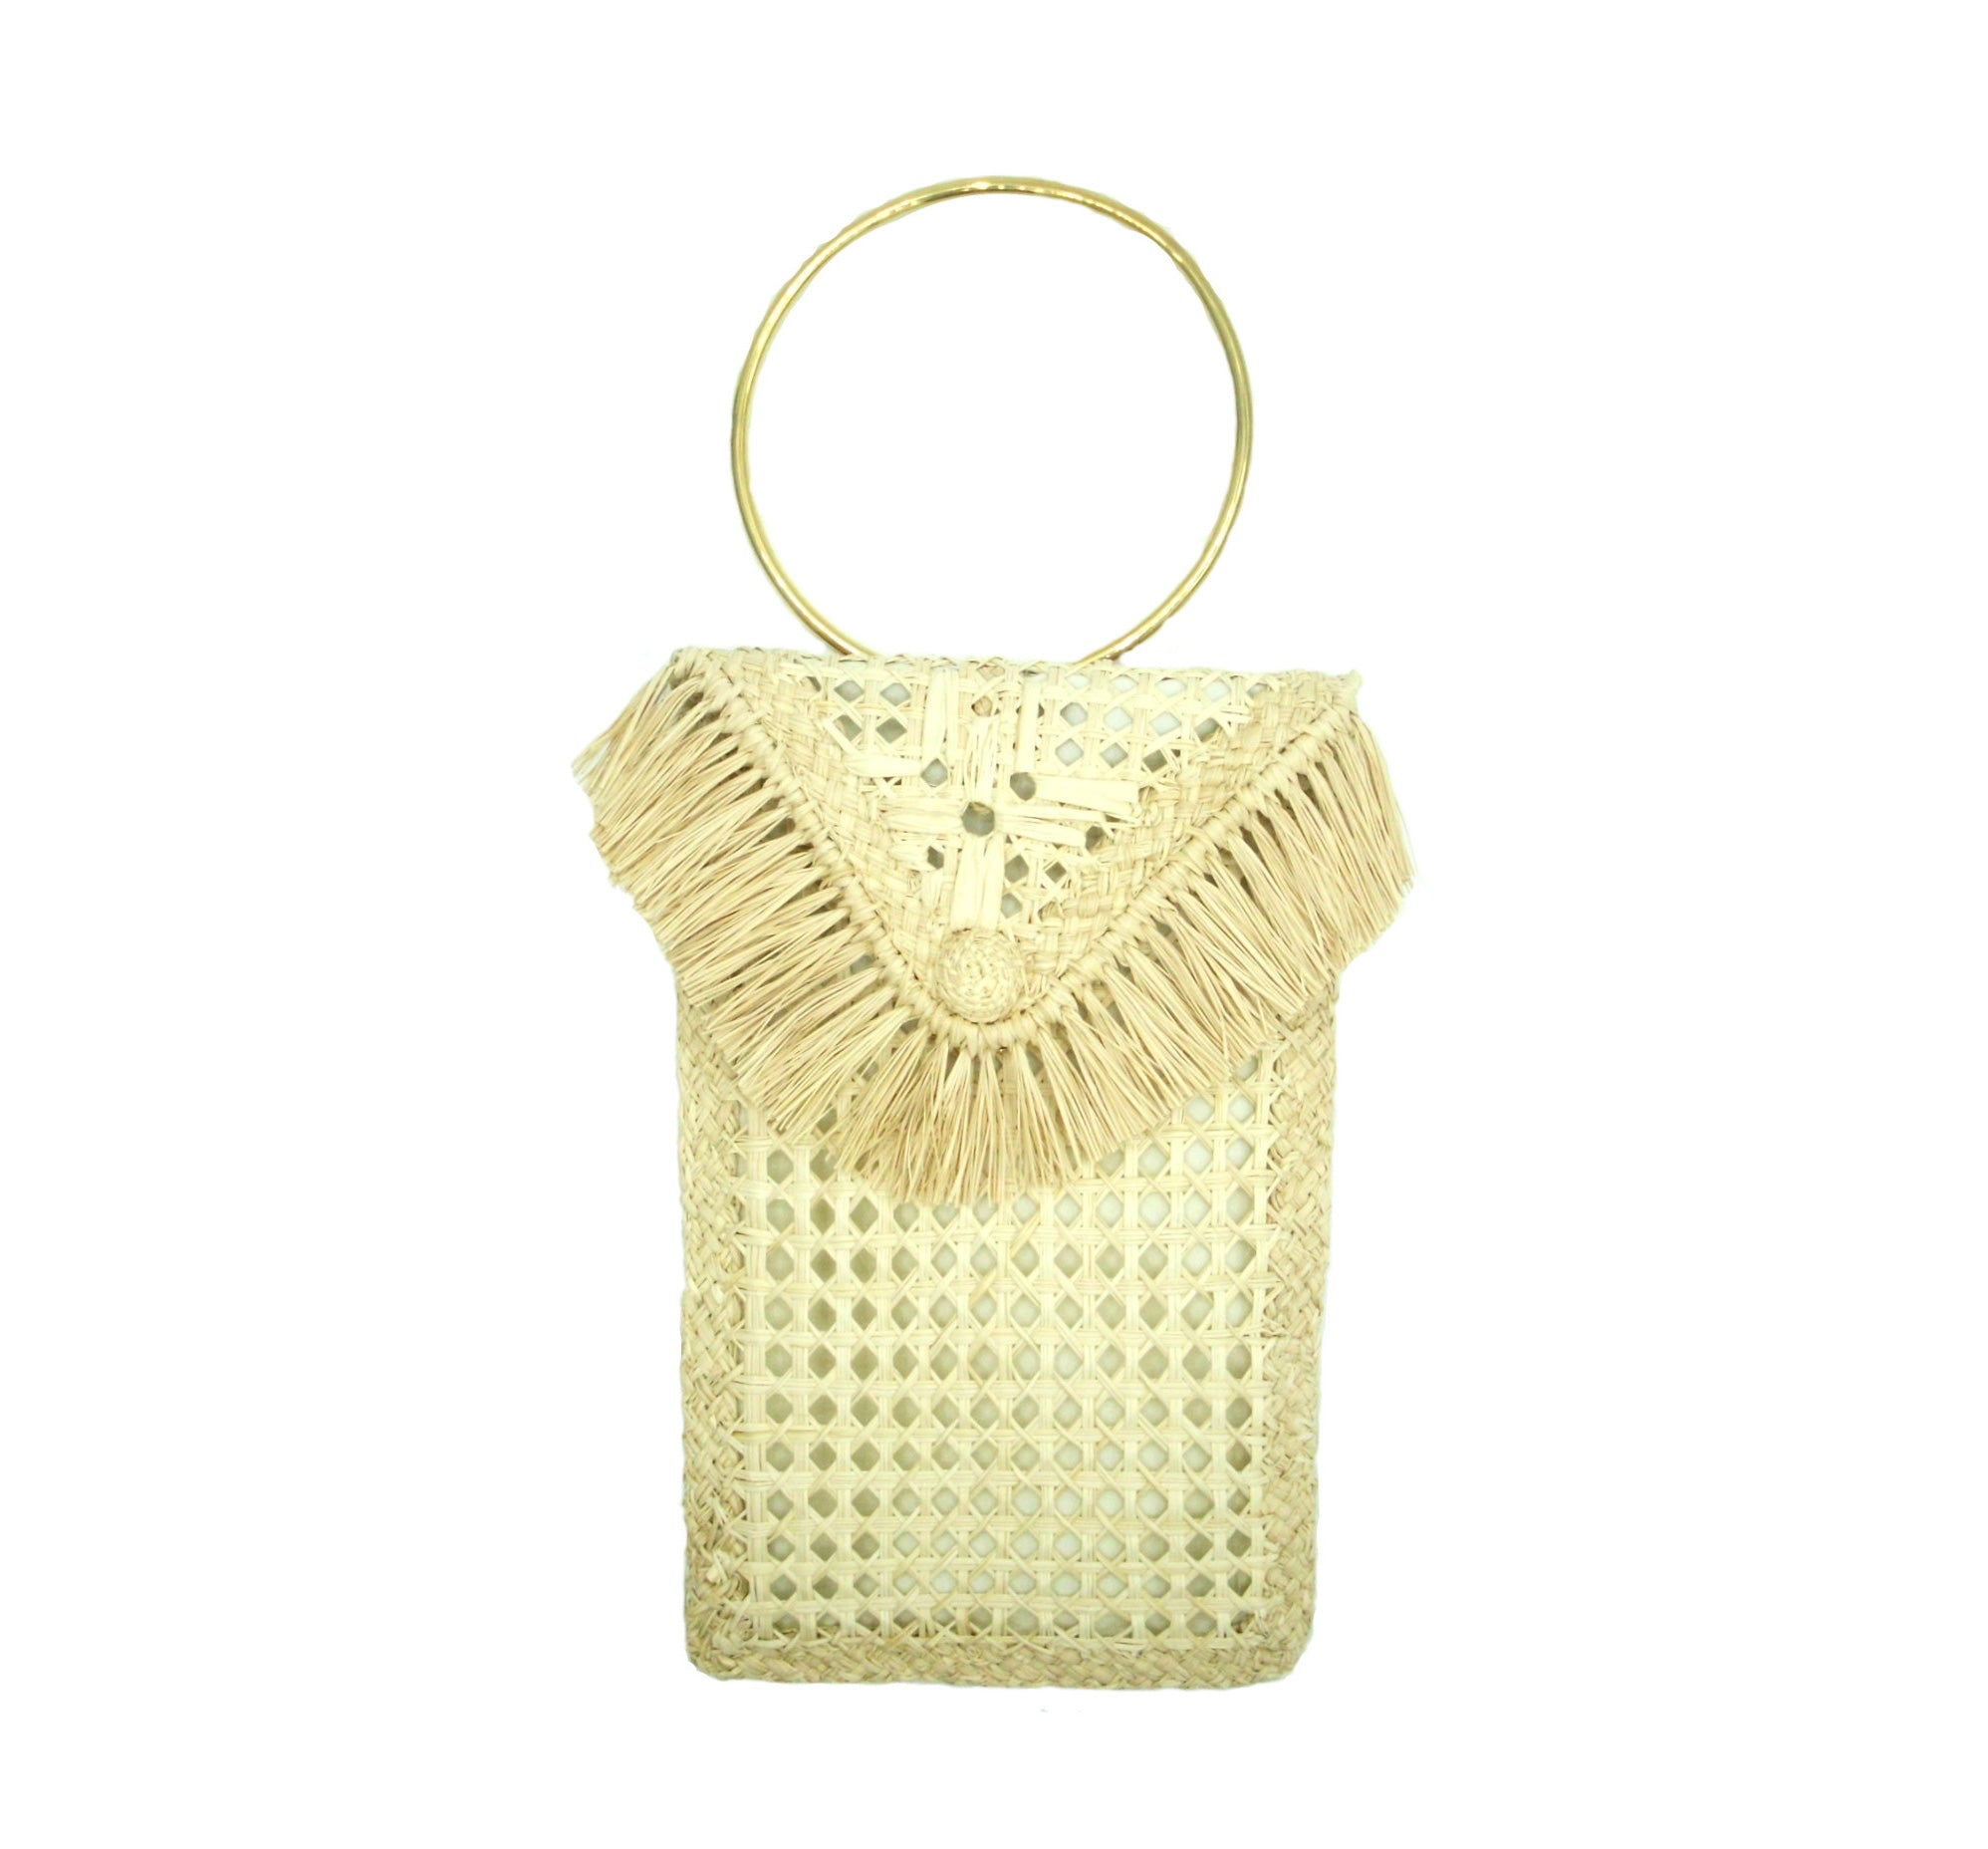 Margarita Iraca Palm Brass Ring Clutch